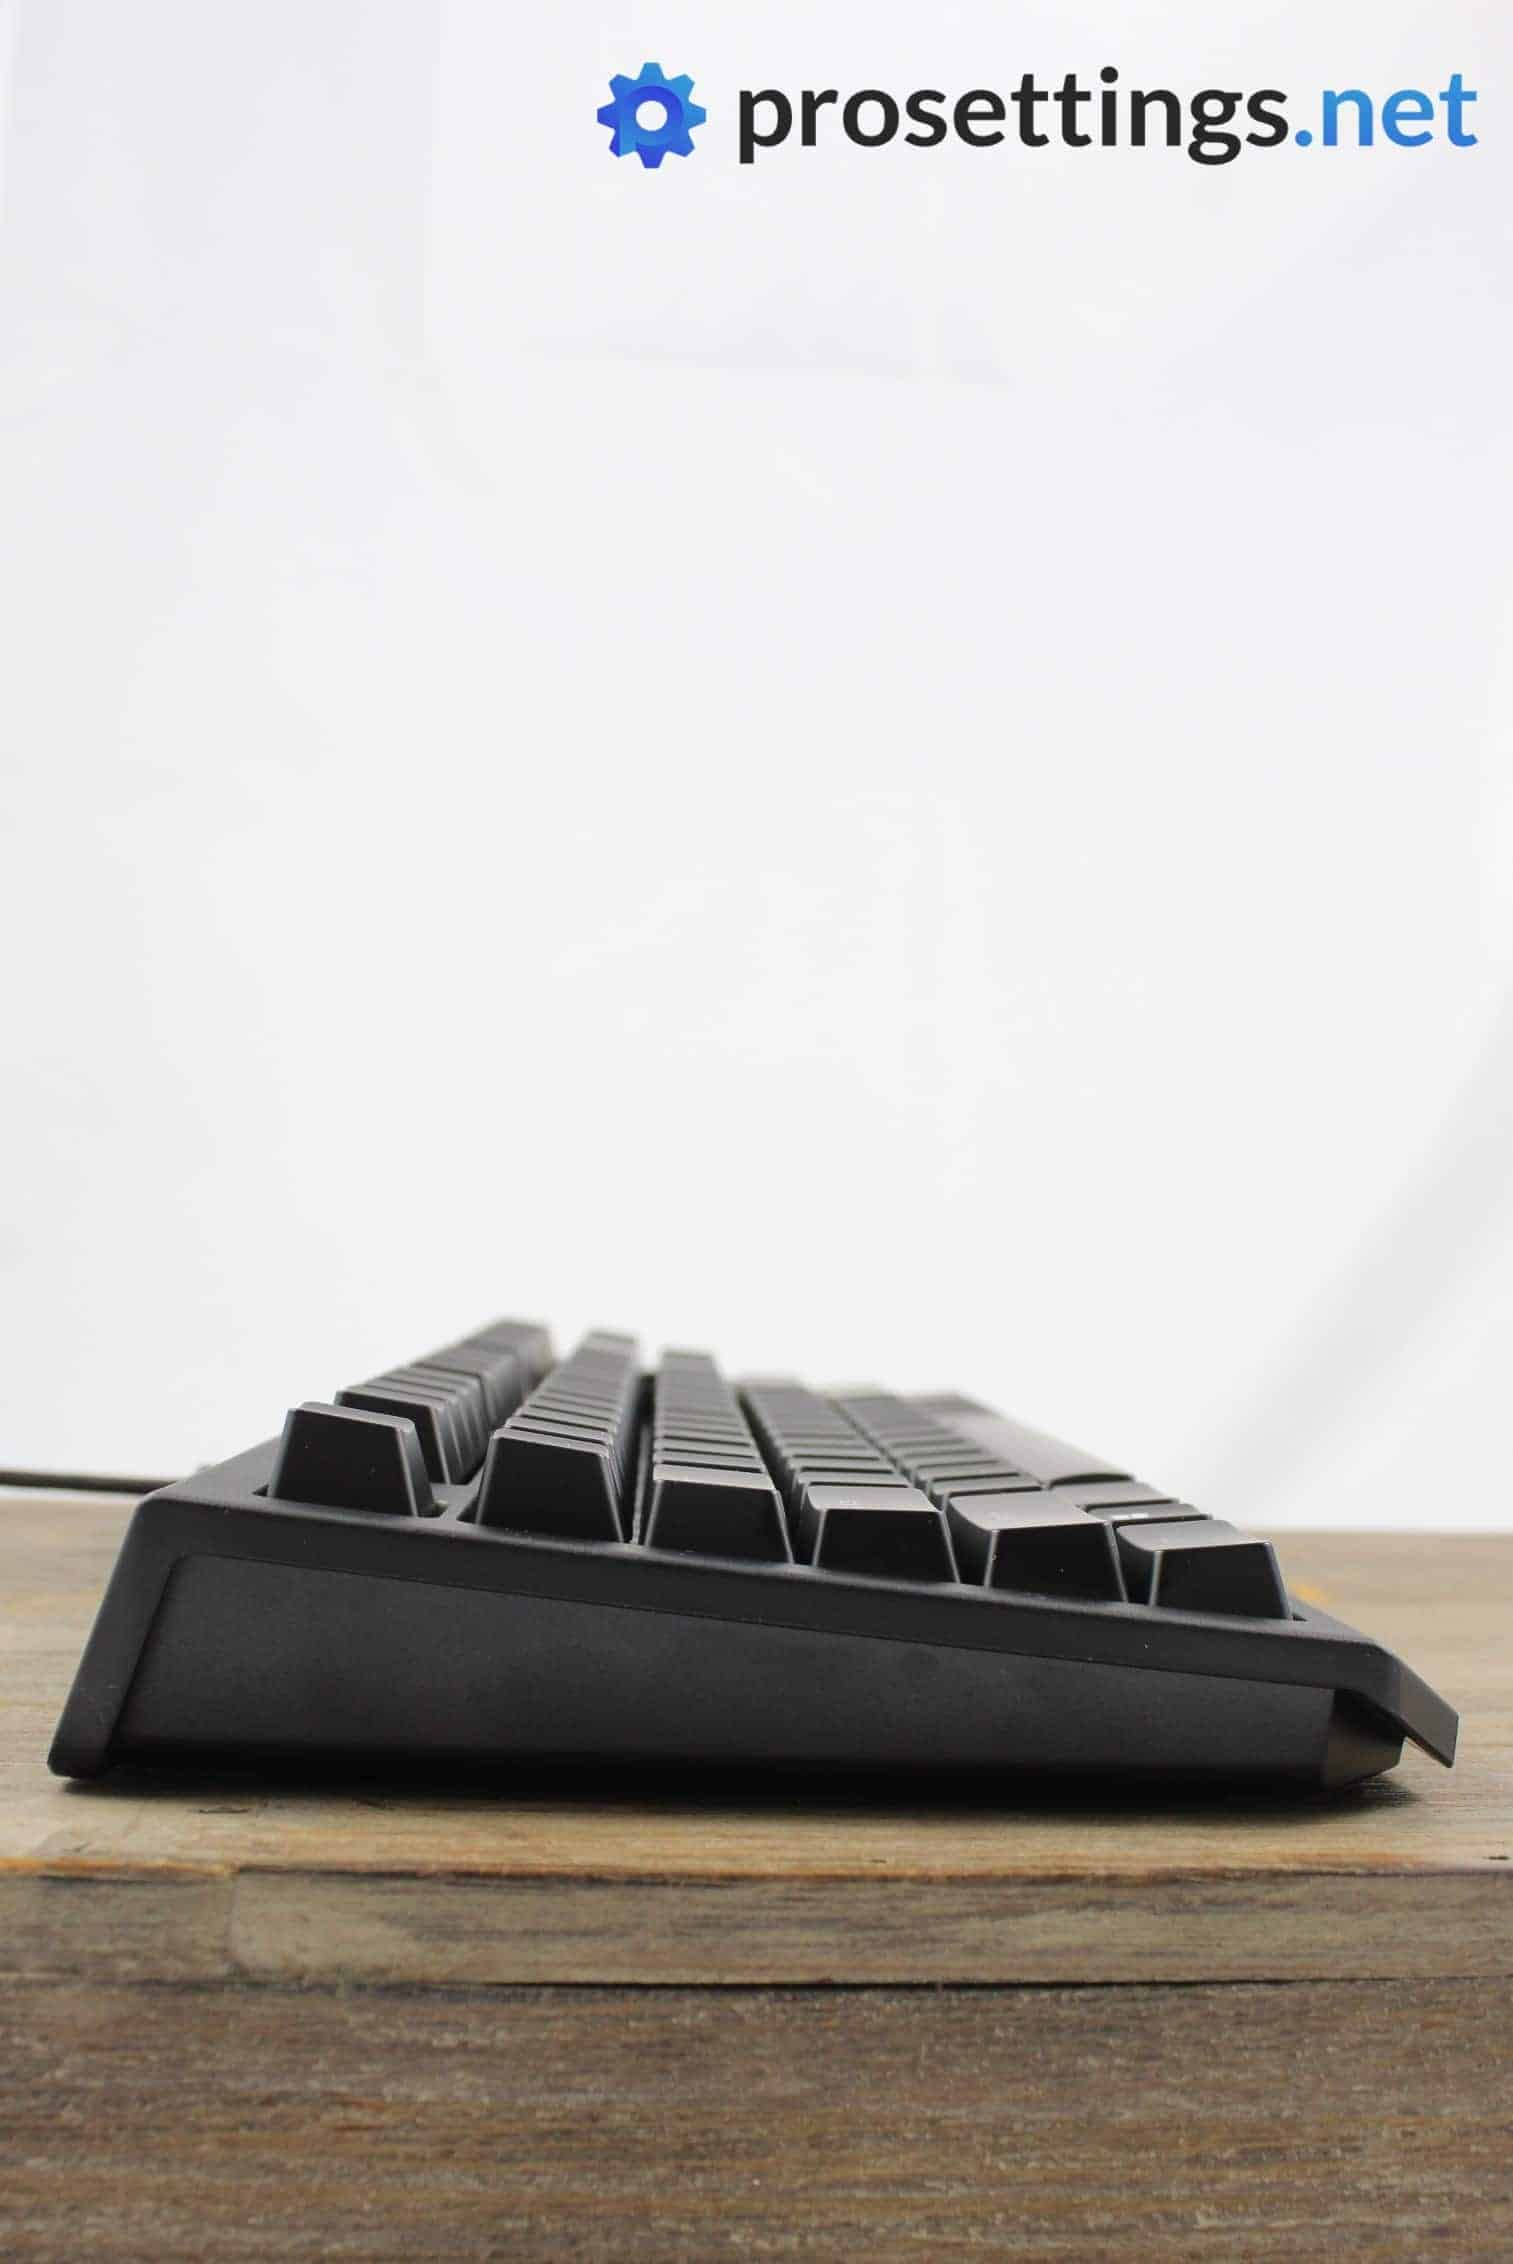 Razer Blackwidow Tournament Edition Chroma V2 Keyboard Review Sideview and Ports